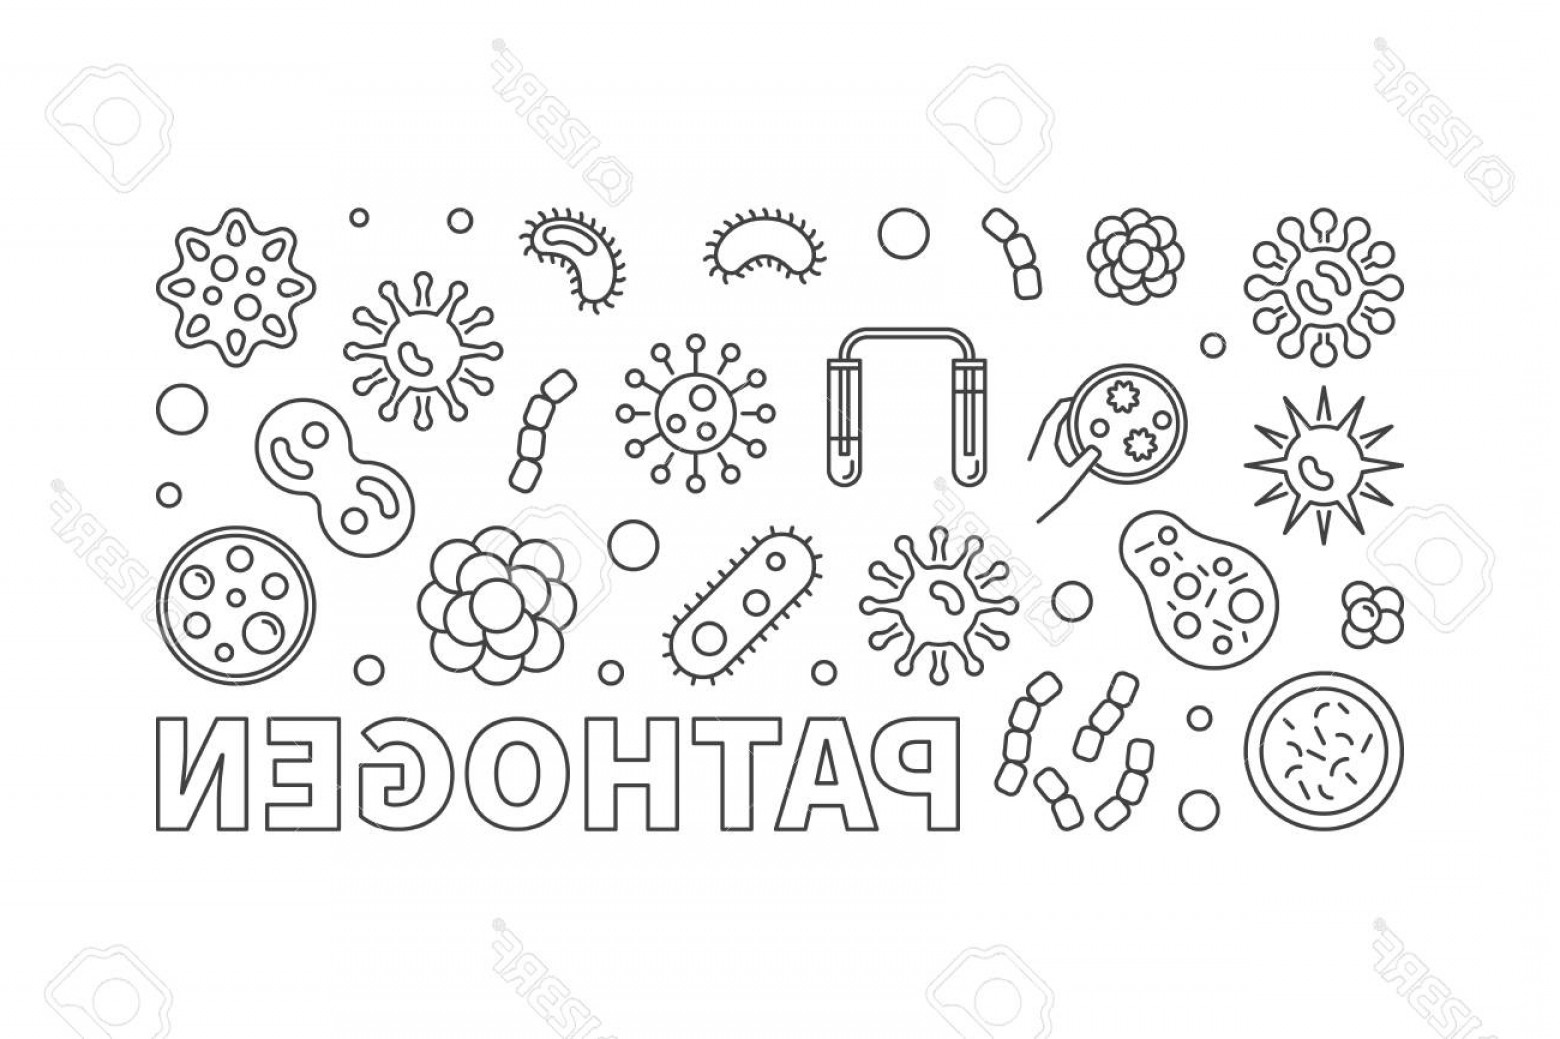 Vector Pathogen: Photostock Vector Pathogen Vector Concept Line Horizontal Illustration Or Banner